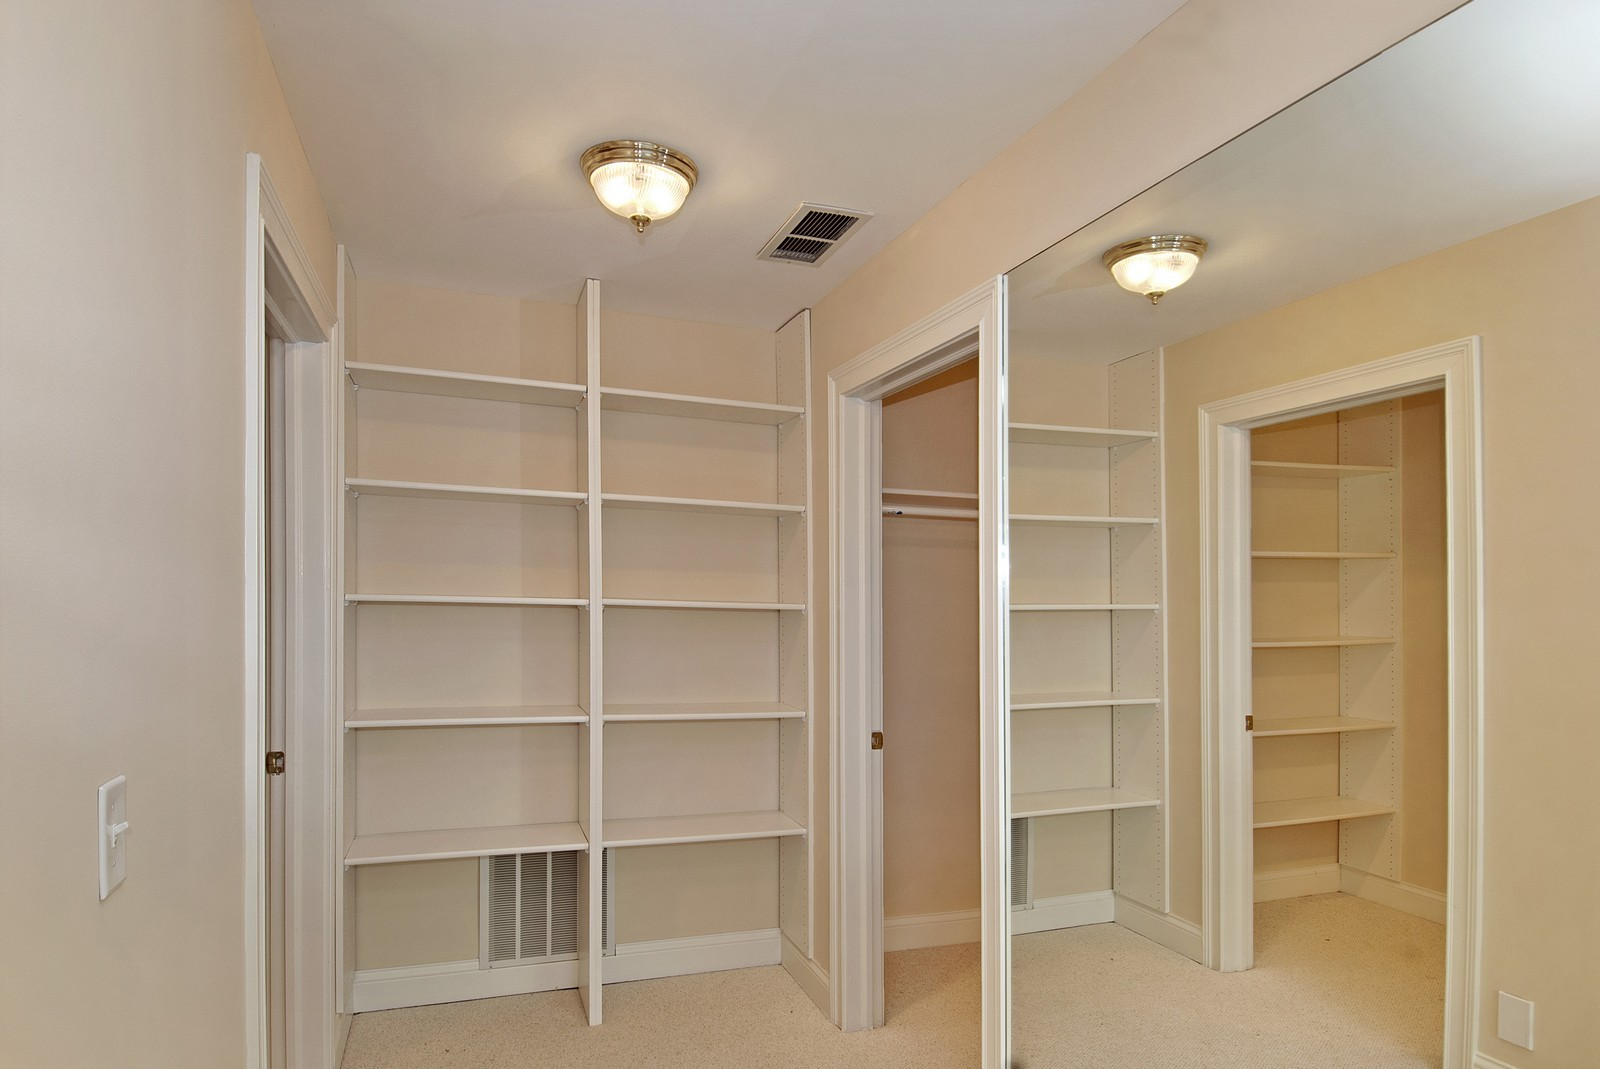 Real Estate Photography - 700 Dunbarton, Inverness, IL, 60010 - Master Bedroom Closet